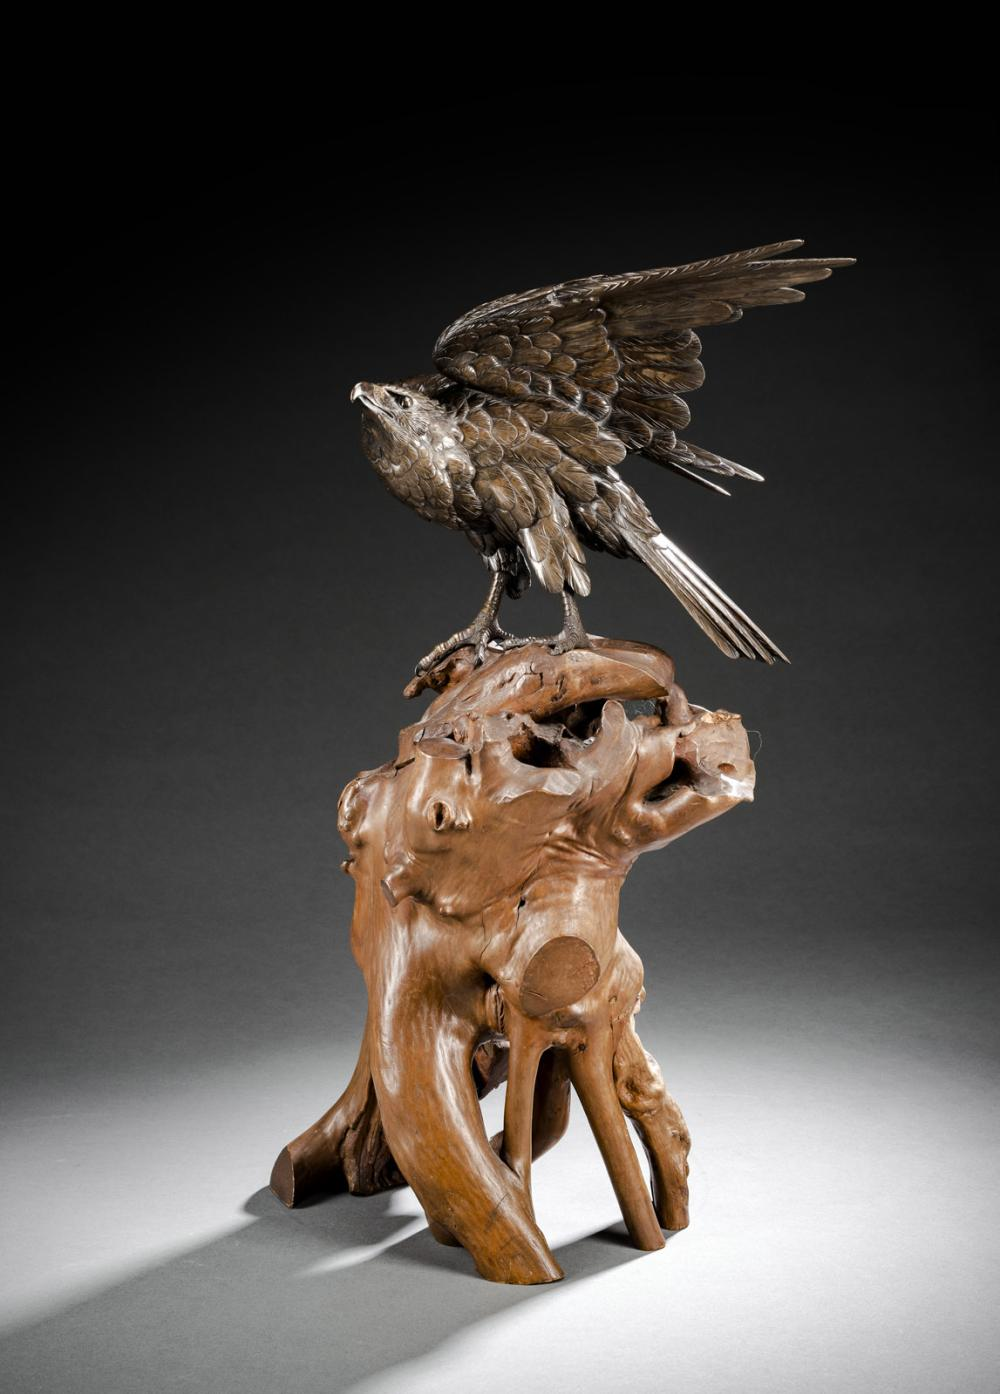 A BRONZE MODEL OF AN EAGLE ON A ROOTWOOD STAND